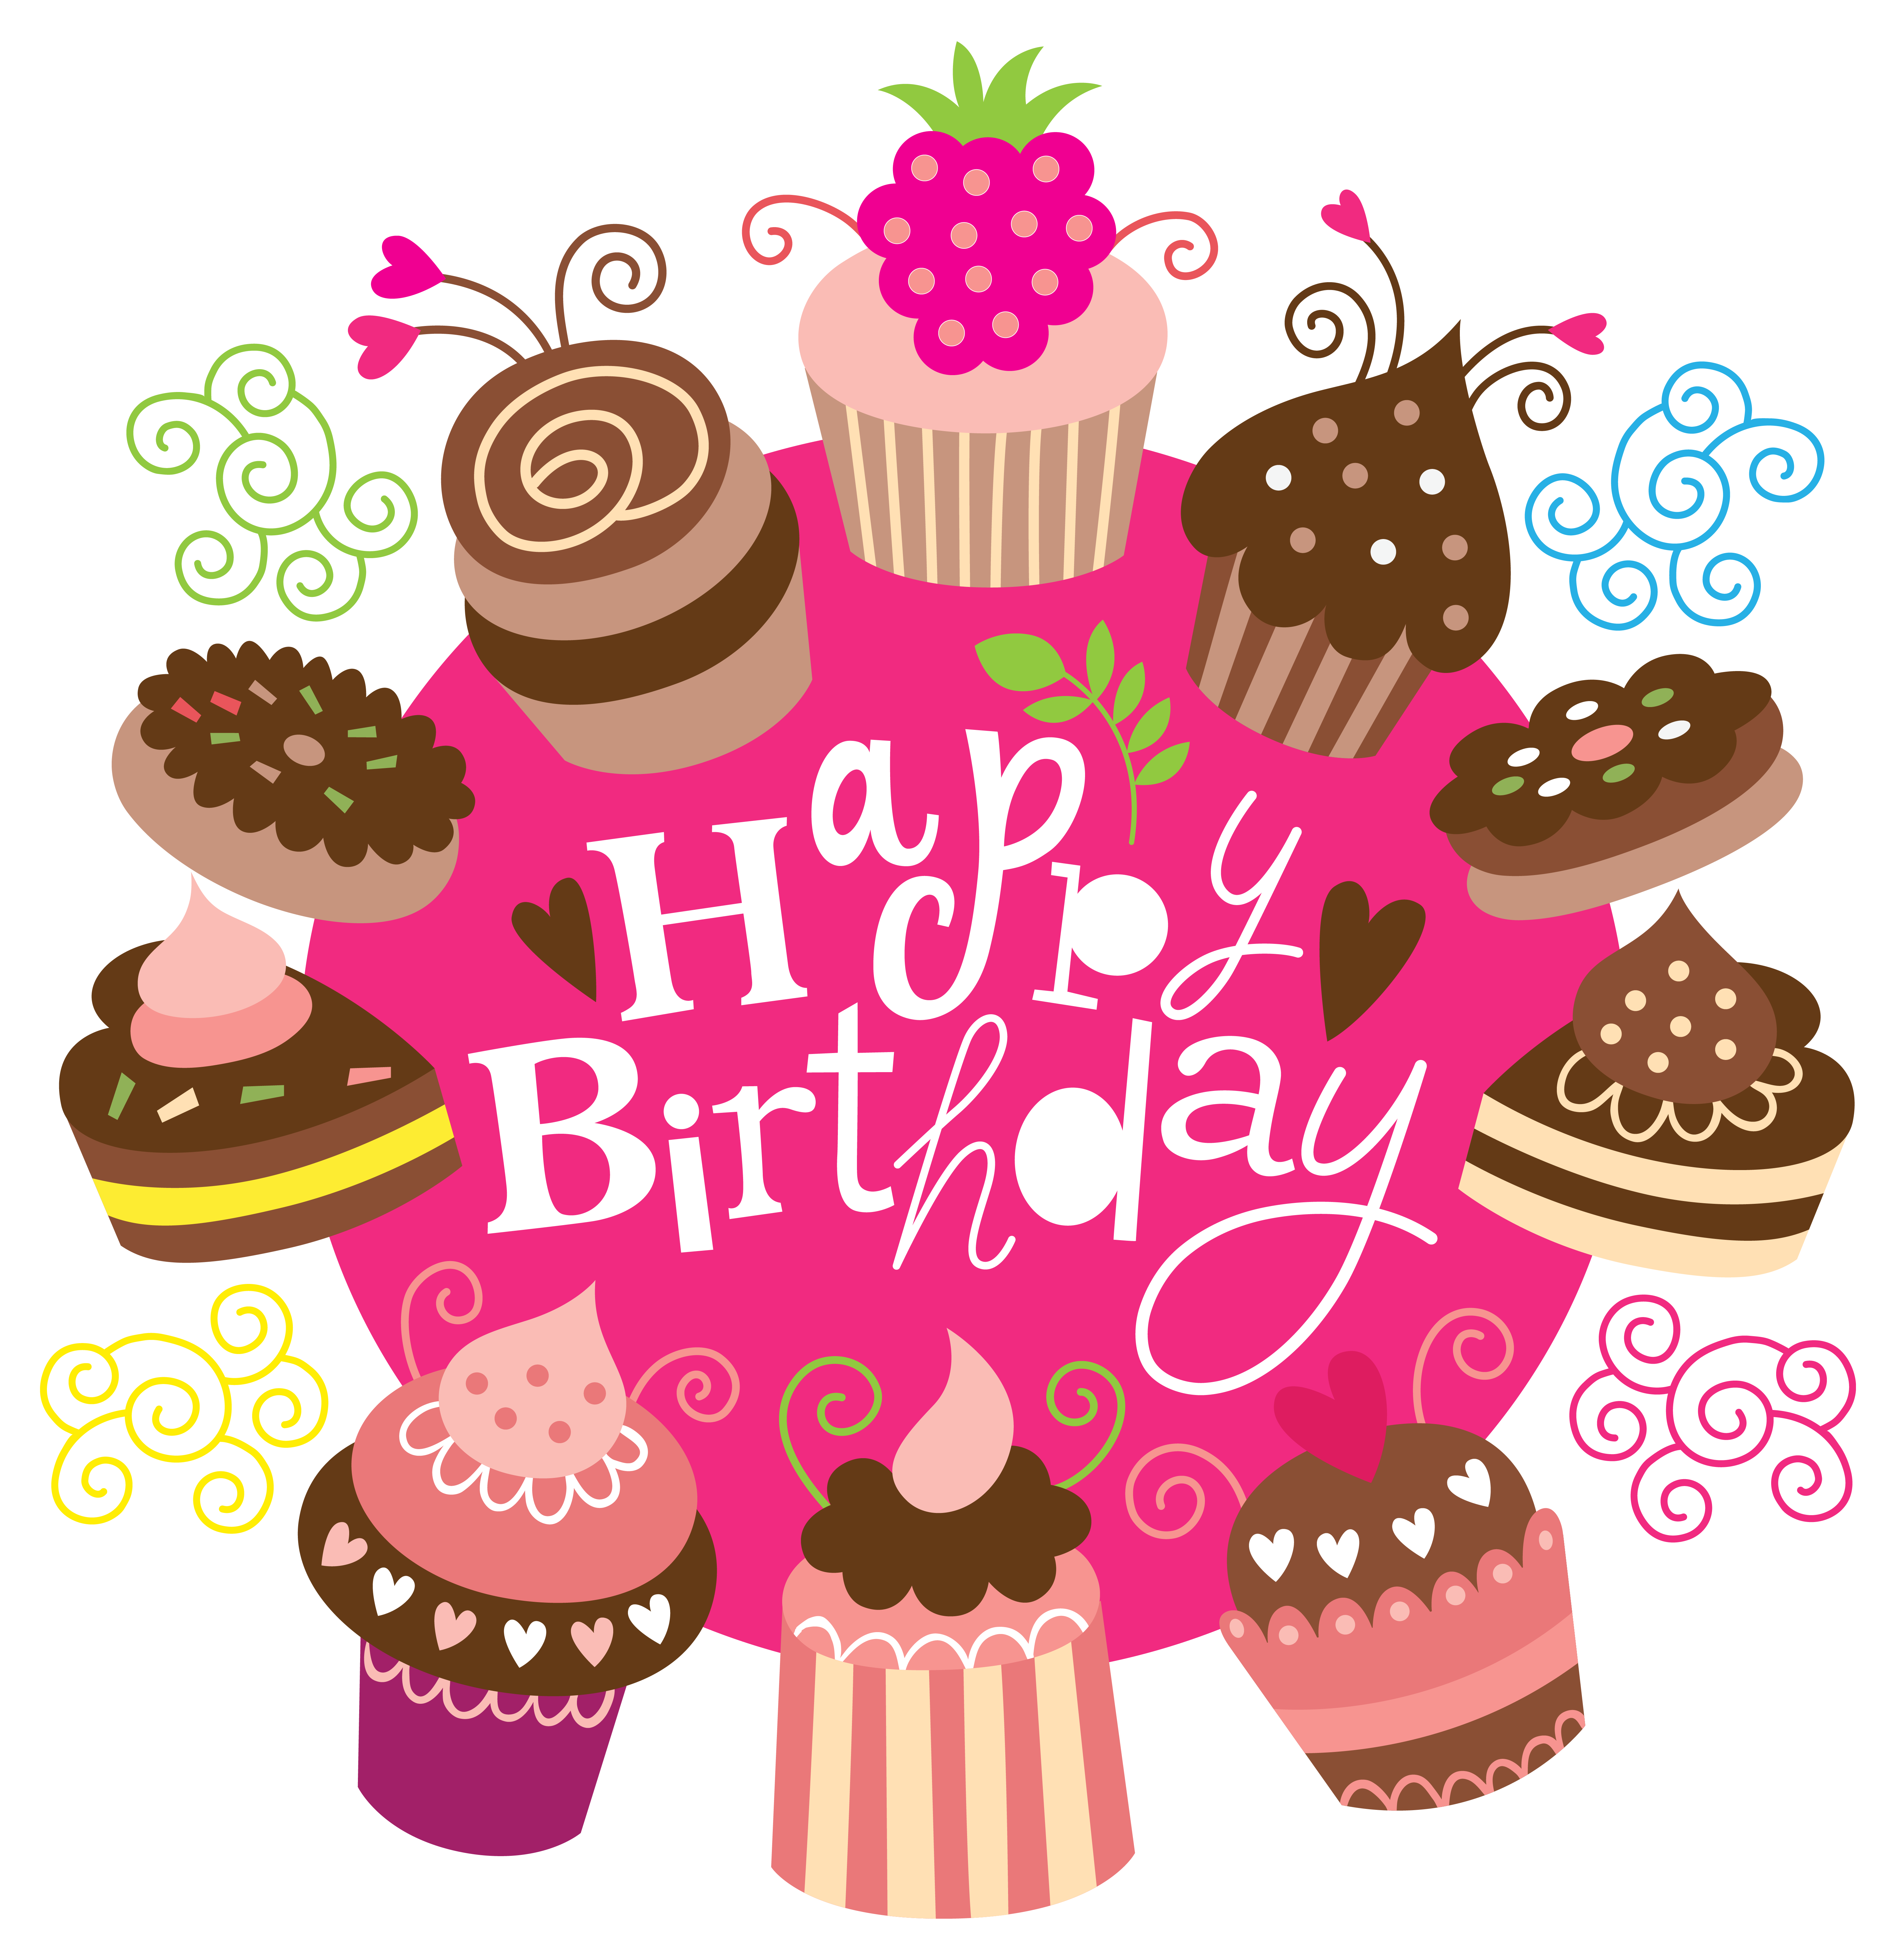 Happy birthday with cakes. Food clipart friend